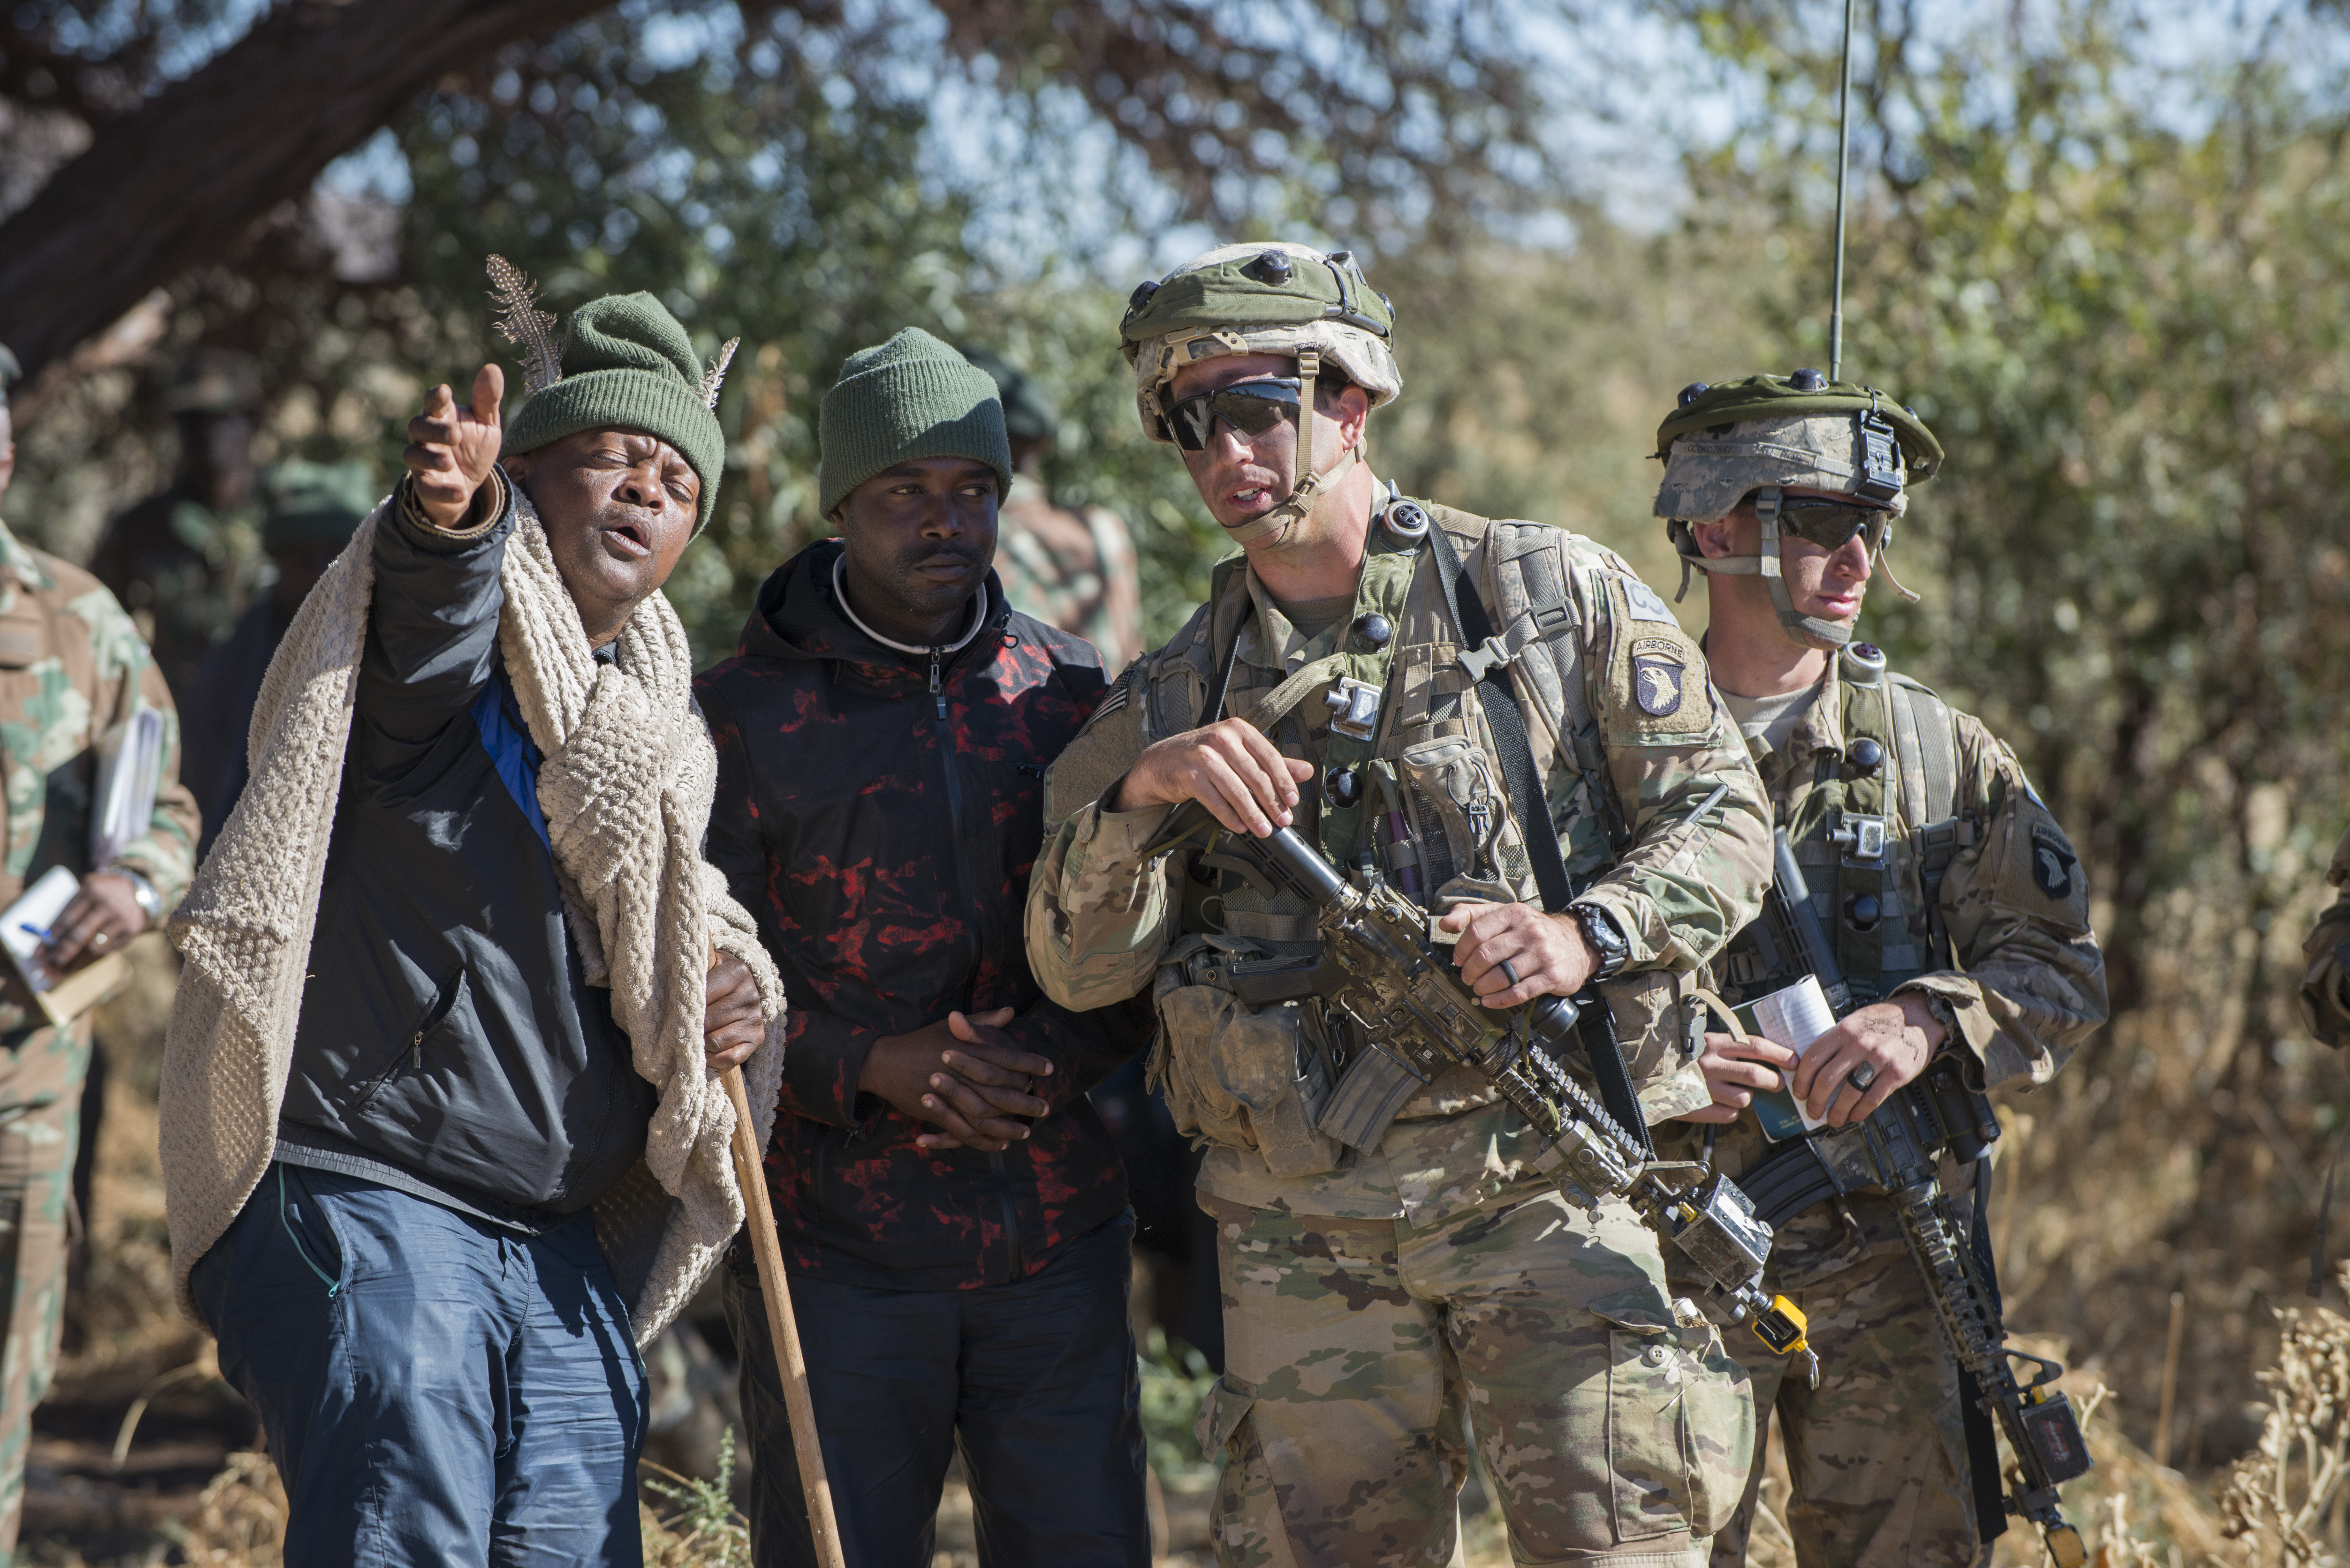 First Lt. Zach Lewis, right, a platoon leader with 101st Airborne Division's 2nd Battalion, 327th Infantry Regiment, speaks with a village elder played by a South African soldier during situational training for Shared Accord 17 at the South African Army Combat Training Center in Lohatla, July 21, 2017. The elder told the Soldiers that a family member had been kidnapped by insurgents and he needed their help. The two-week exercise, which ends Aug. 3, enhances the peacekeeping capabilities of U.S. and African forces. (Photo by Sean Kimmons Army News Service)